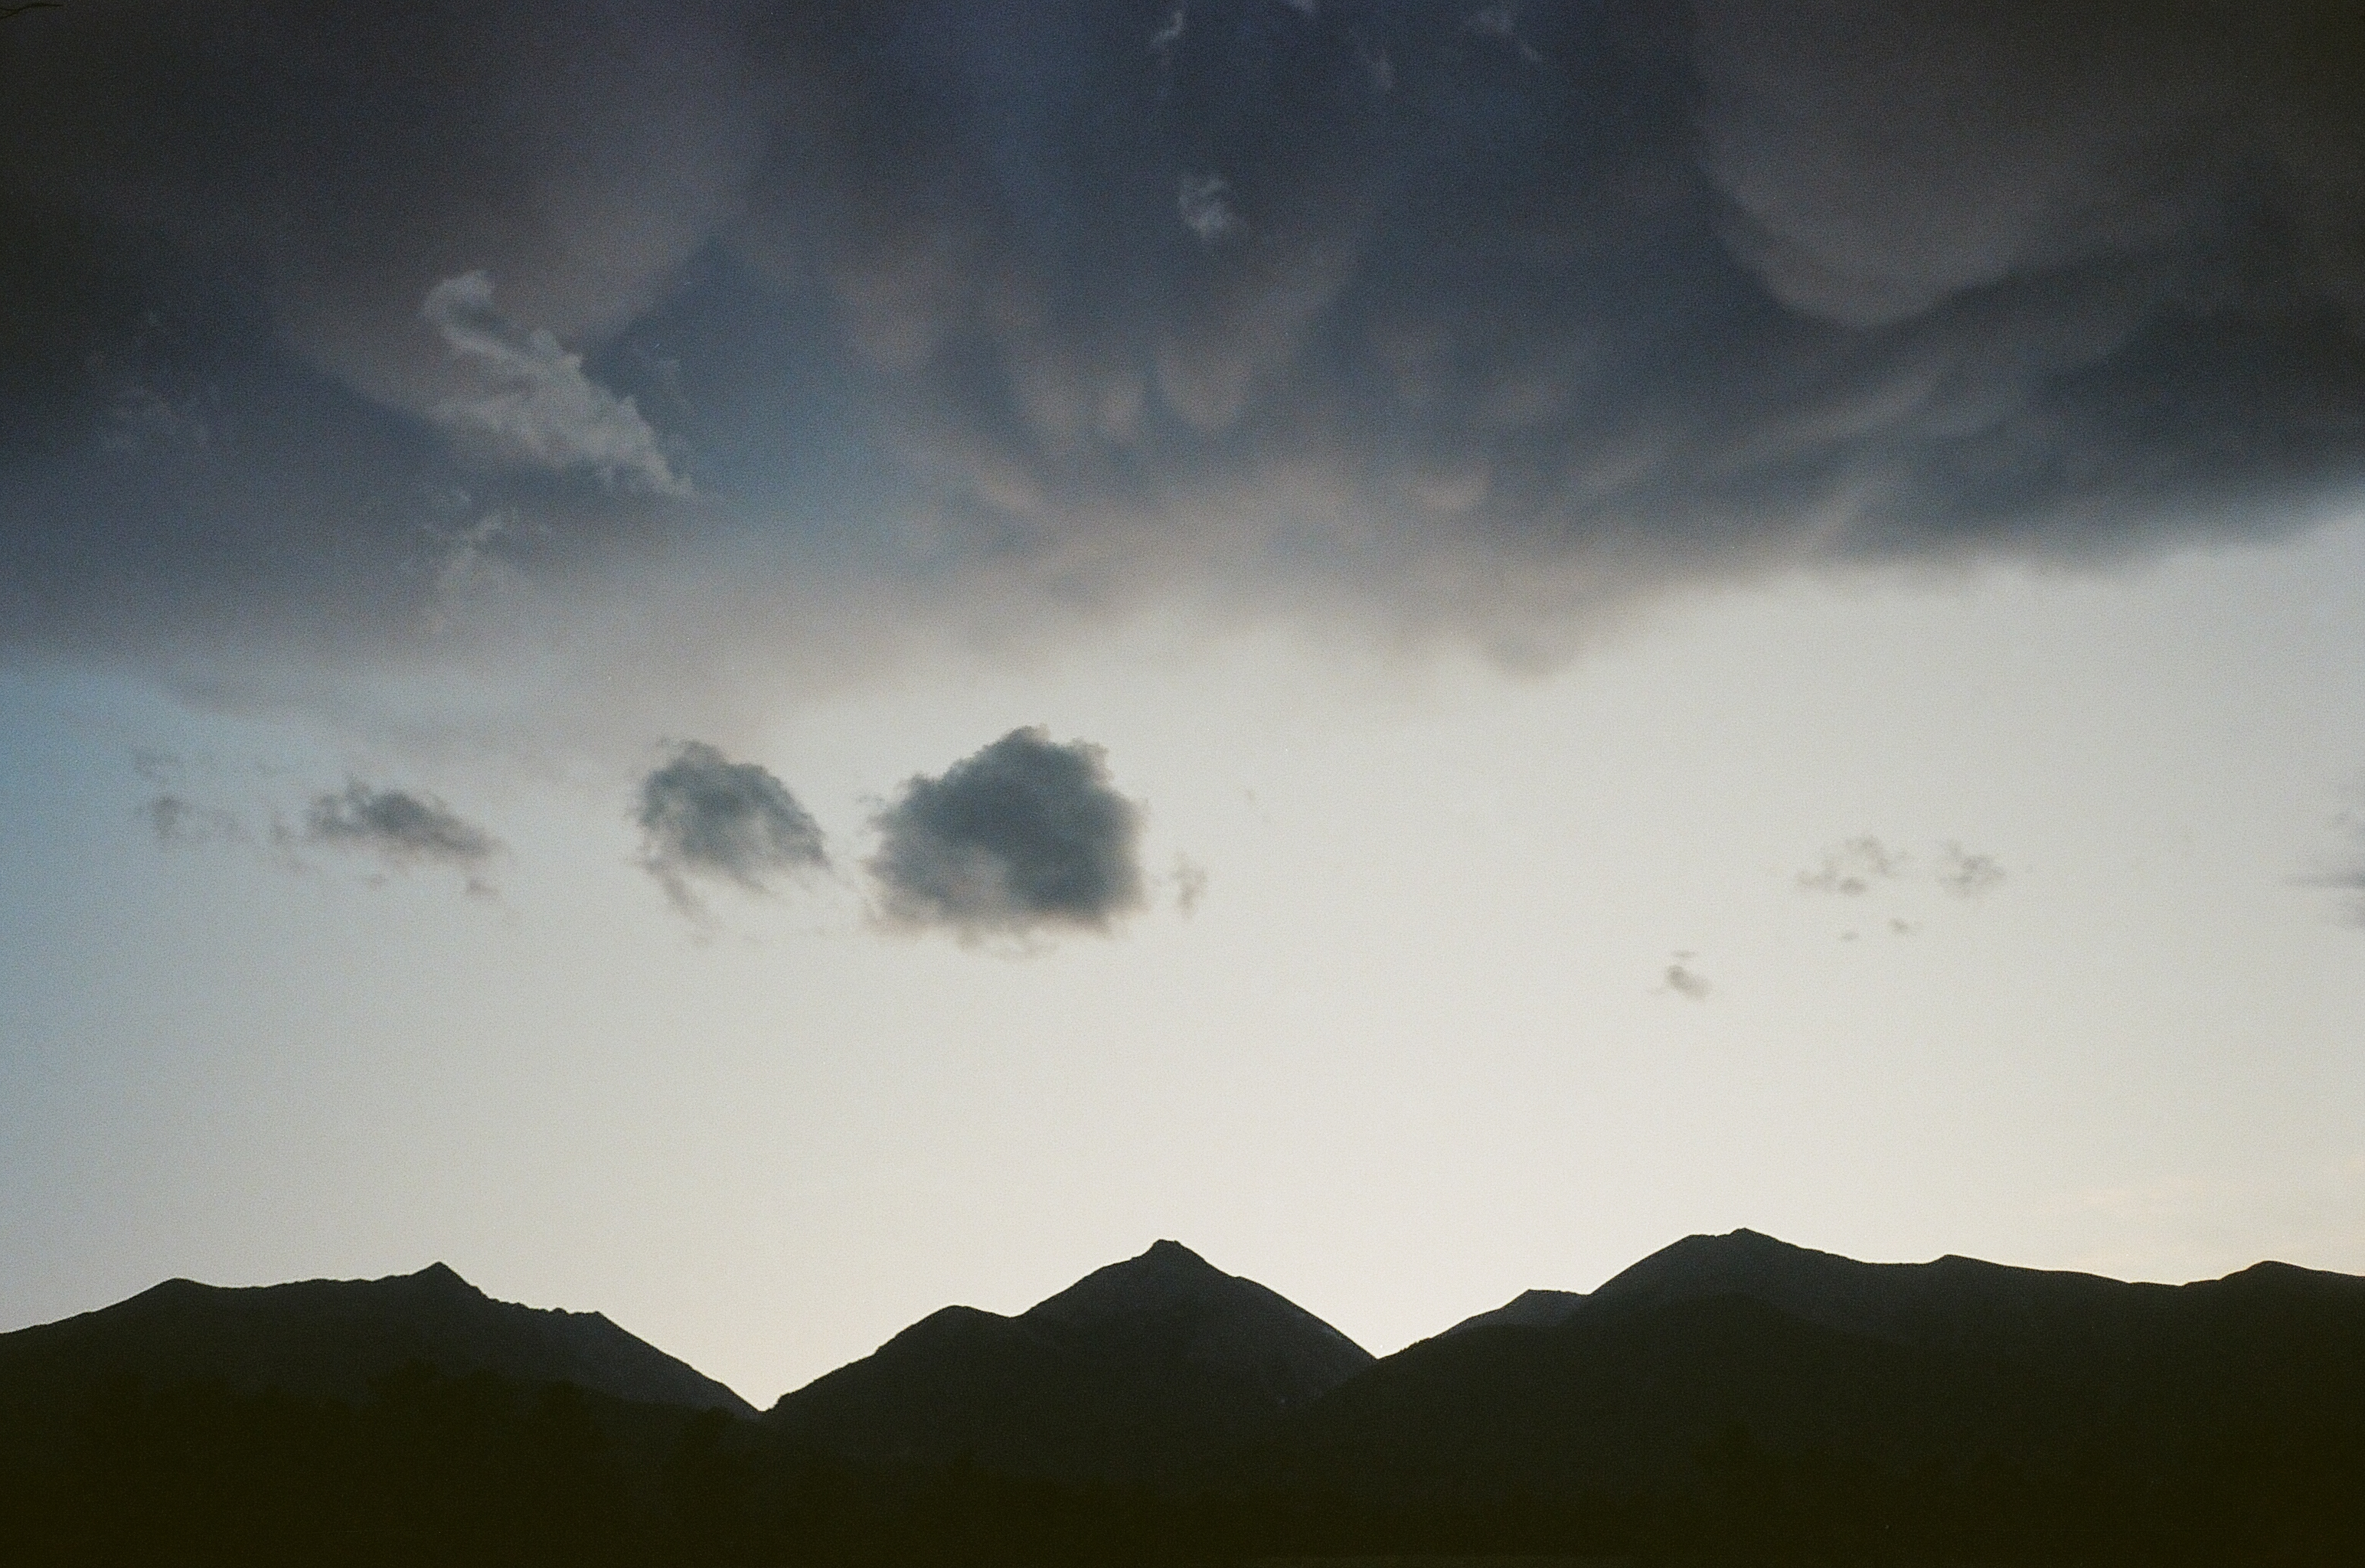 Rocky Mountain Collegiate Peaks in silhouette with clouds Nathrop, CO, August 2017 | photo © NSS